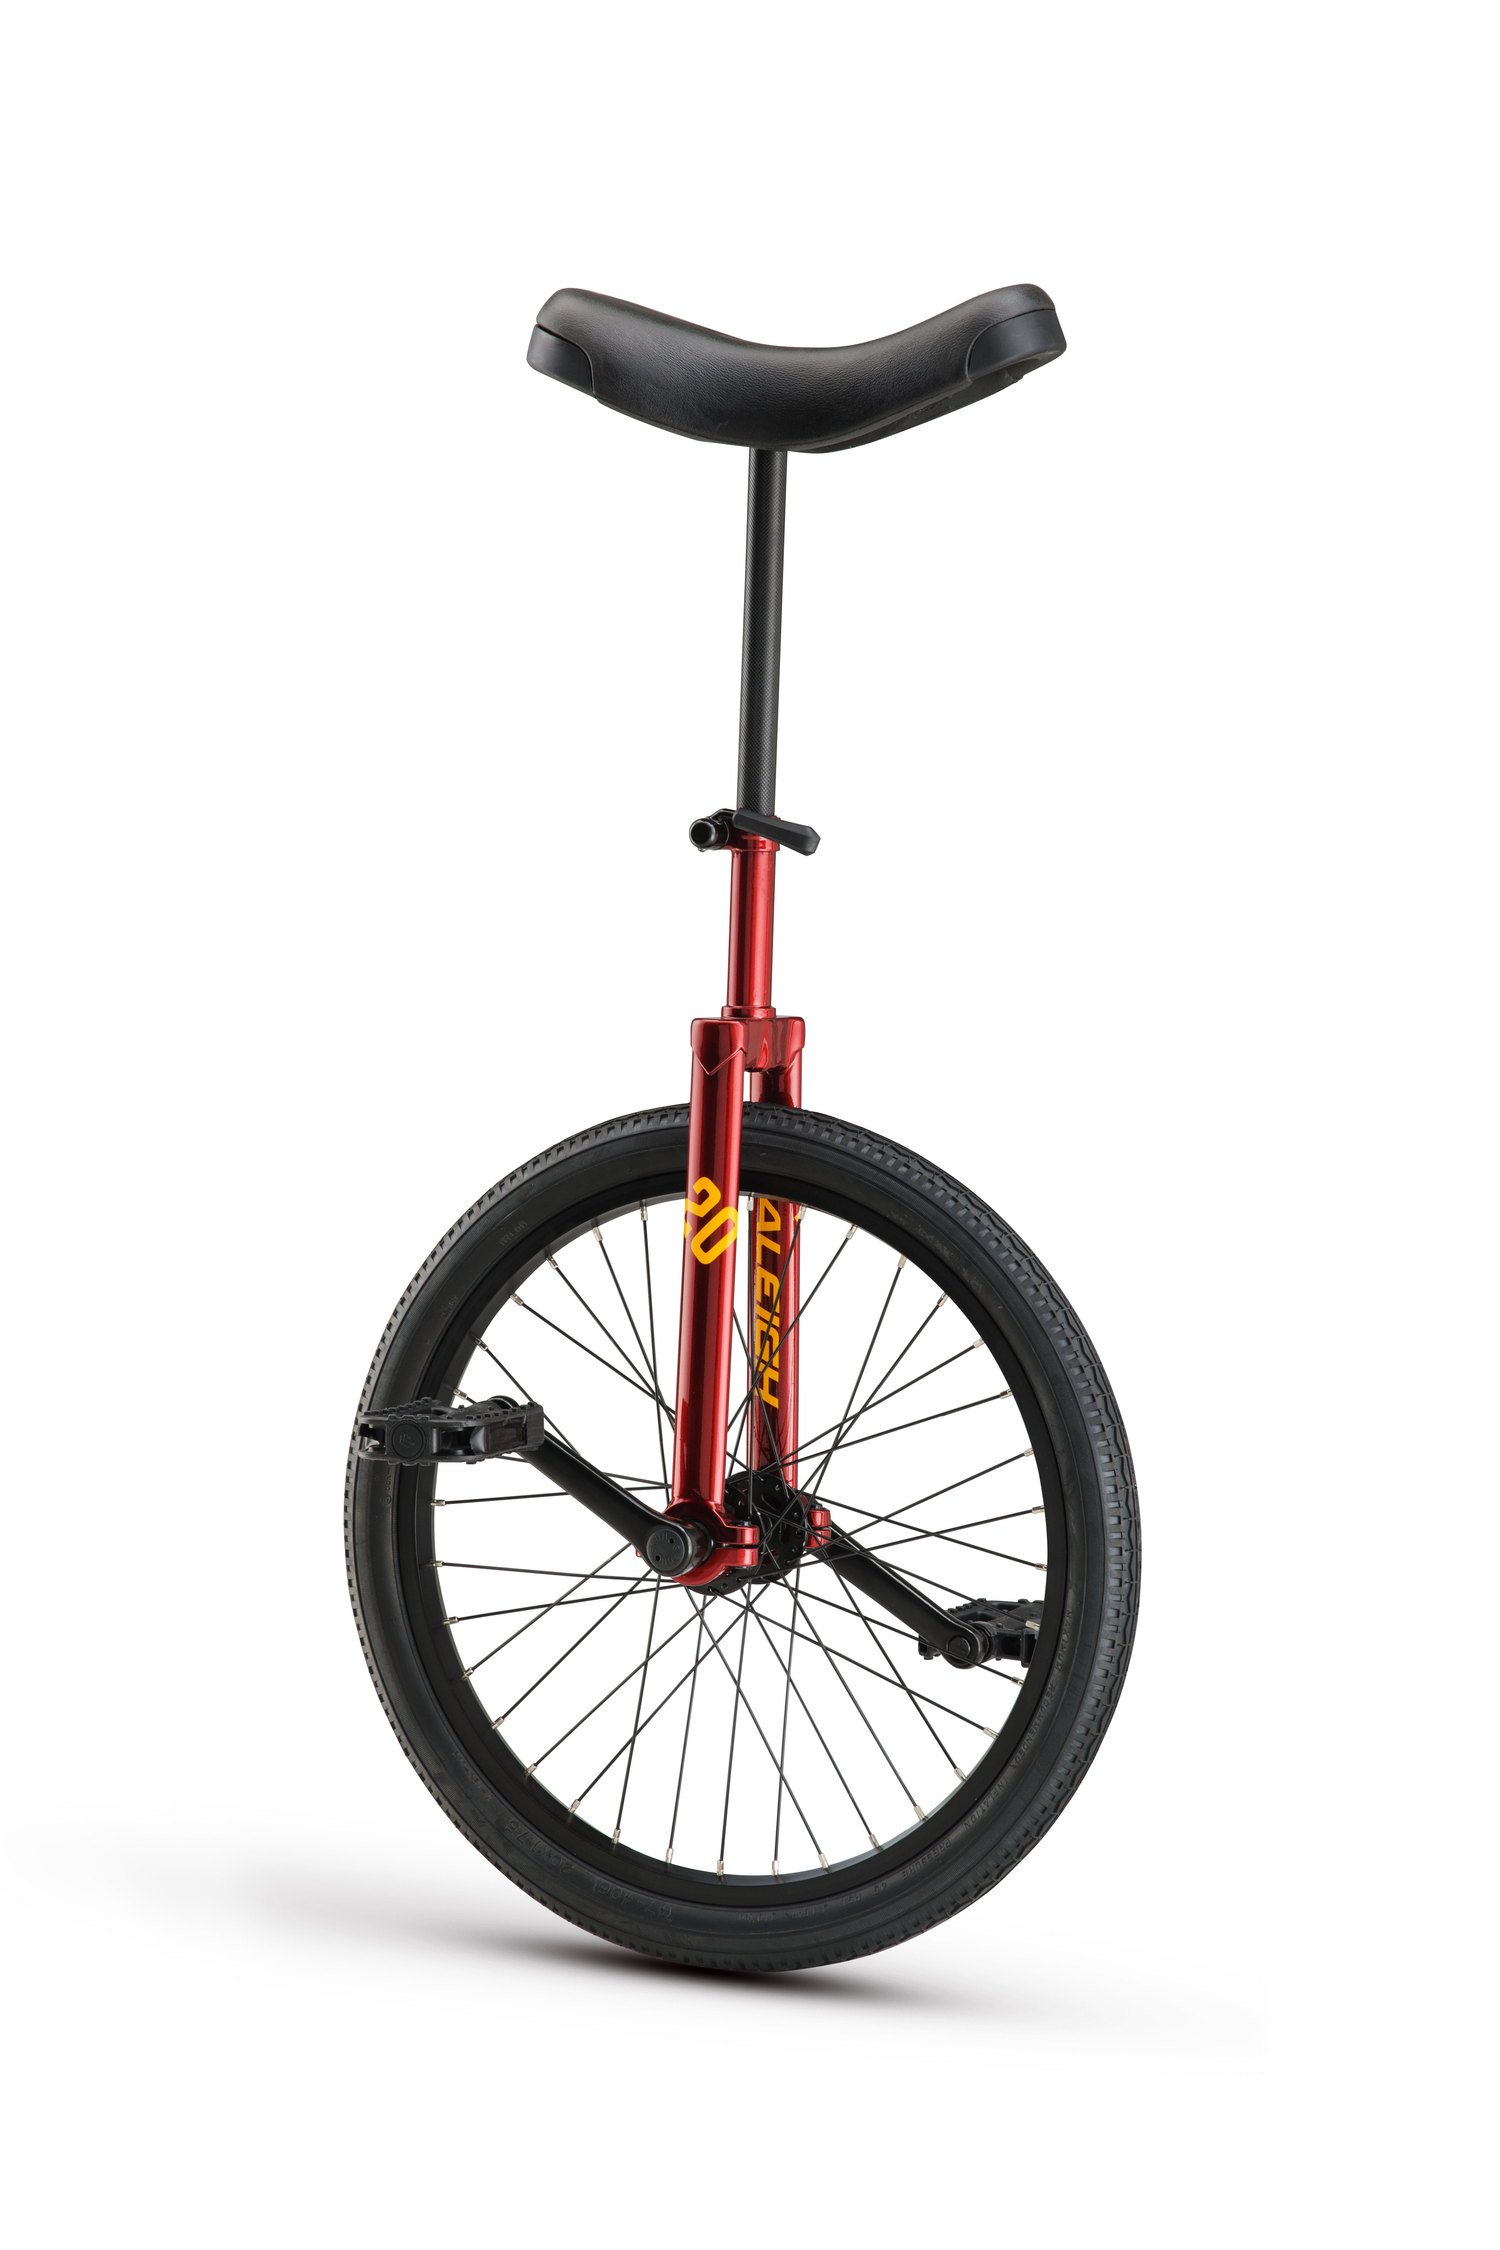 RALEIGH Unistar 20, 20inch Wheel Unicycle, Red, by RALEIGH